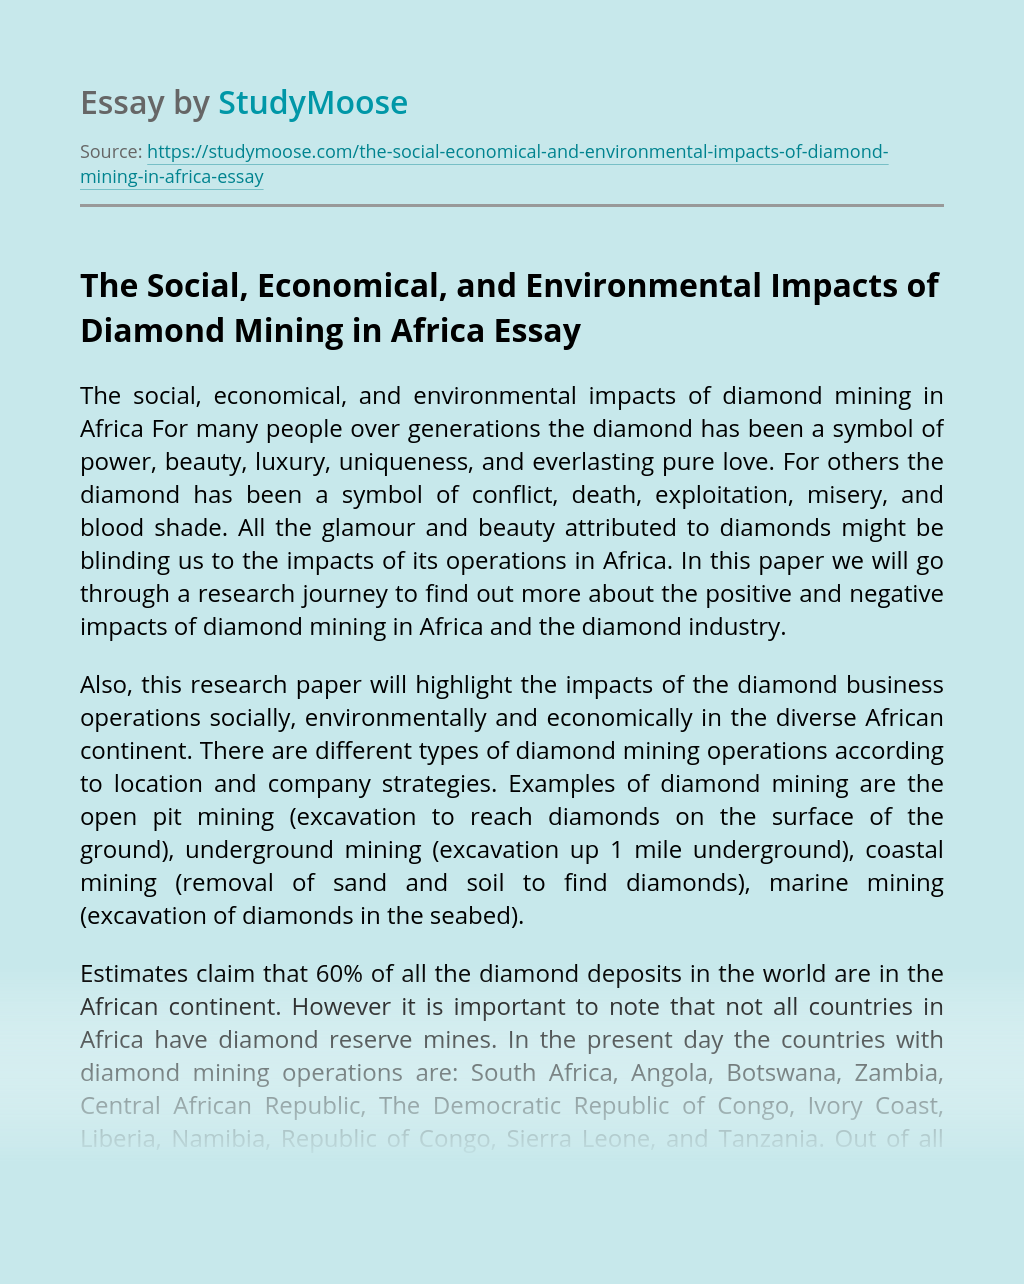 The Social, Economical, and Environmental Impacts of Diamond Mining in Africa